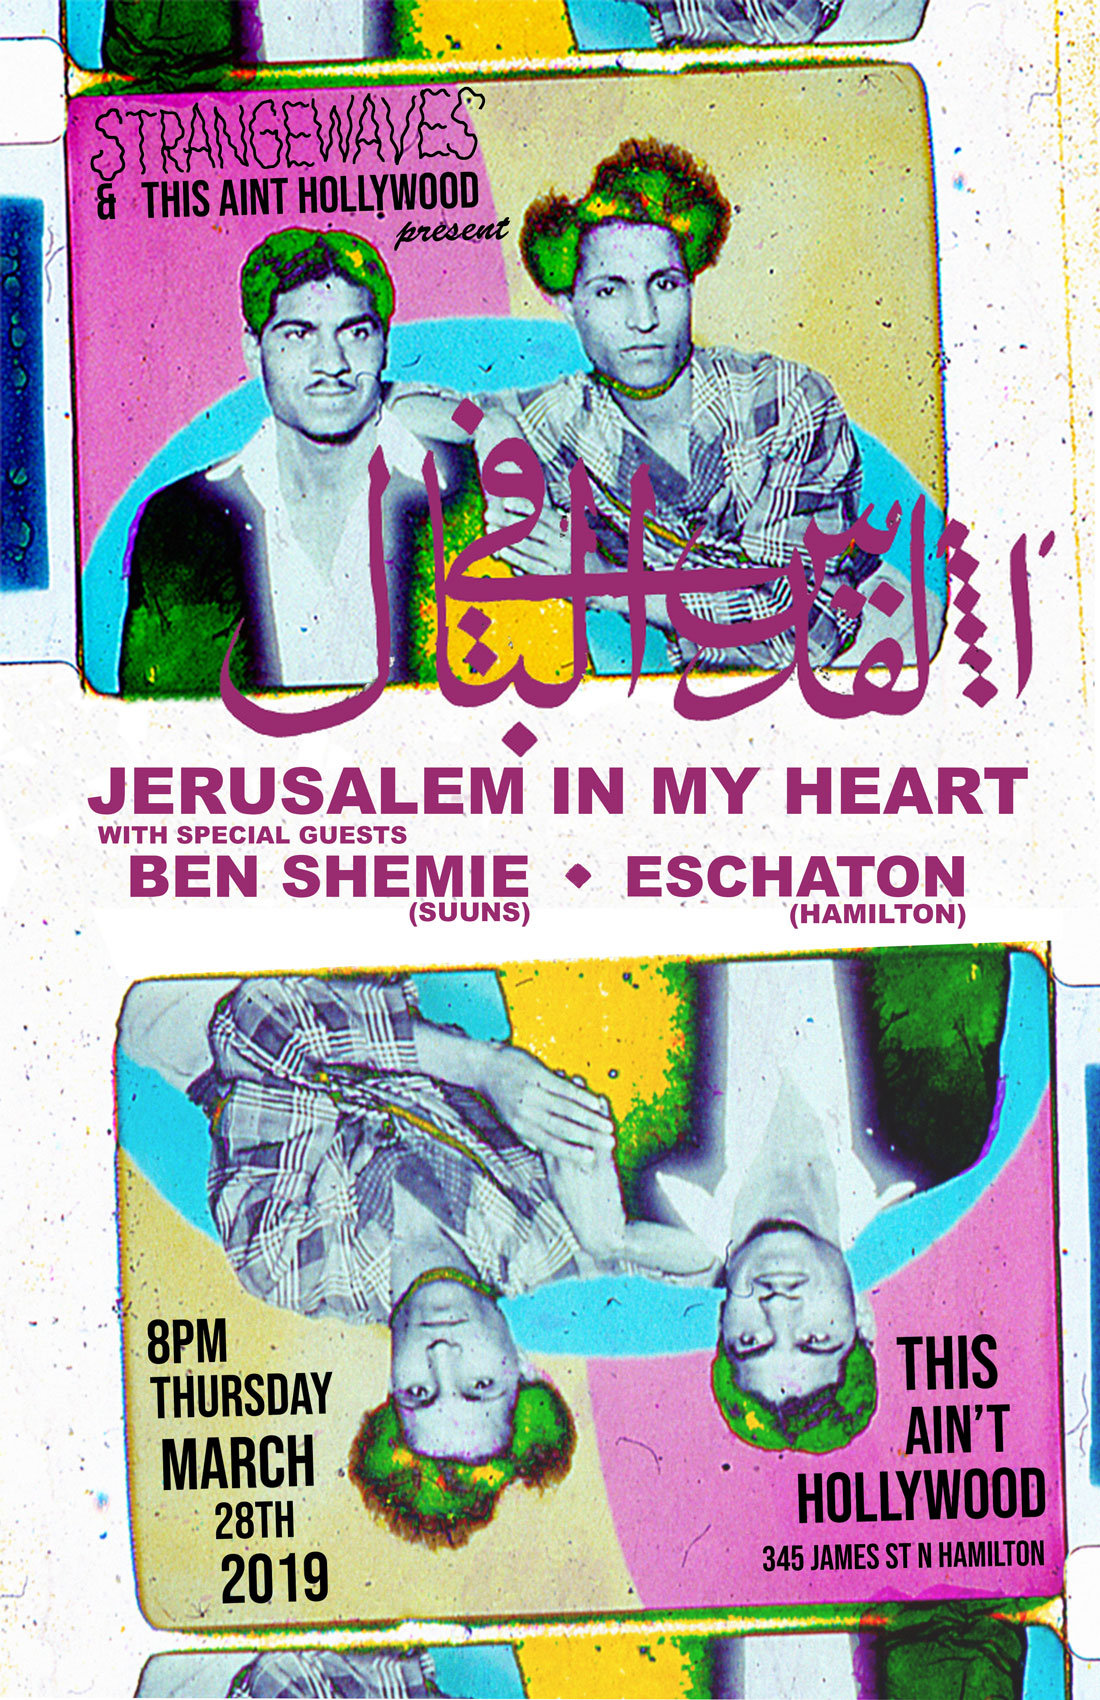 Jerusalem In My Heart, Ben Shemie (Suuns), Eschaton  @This Ain't Hollywood